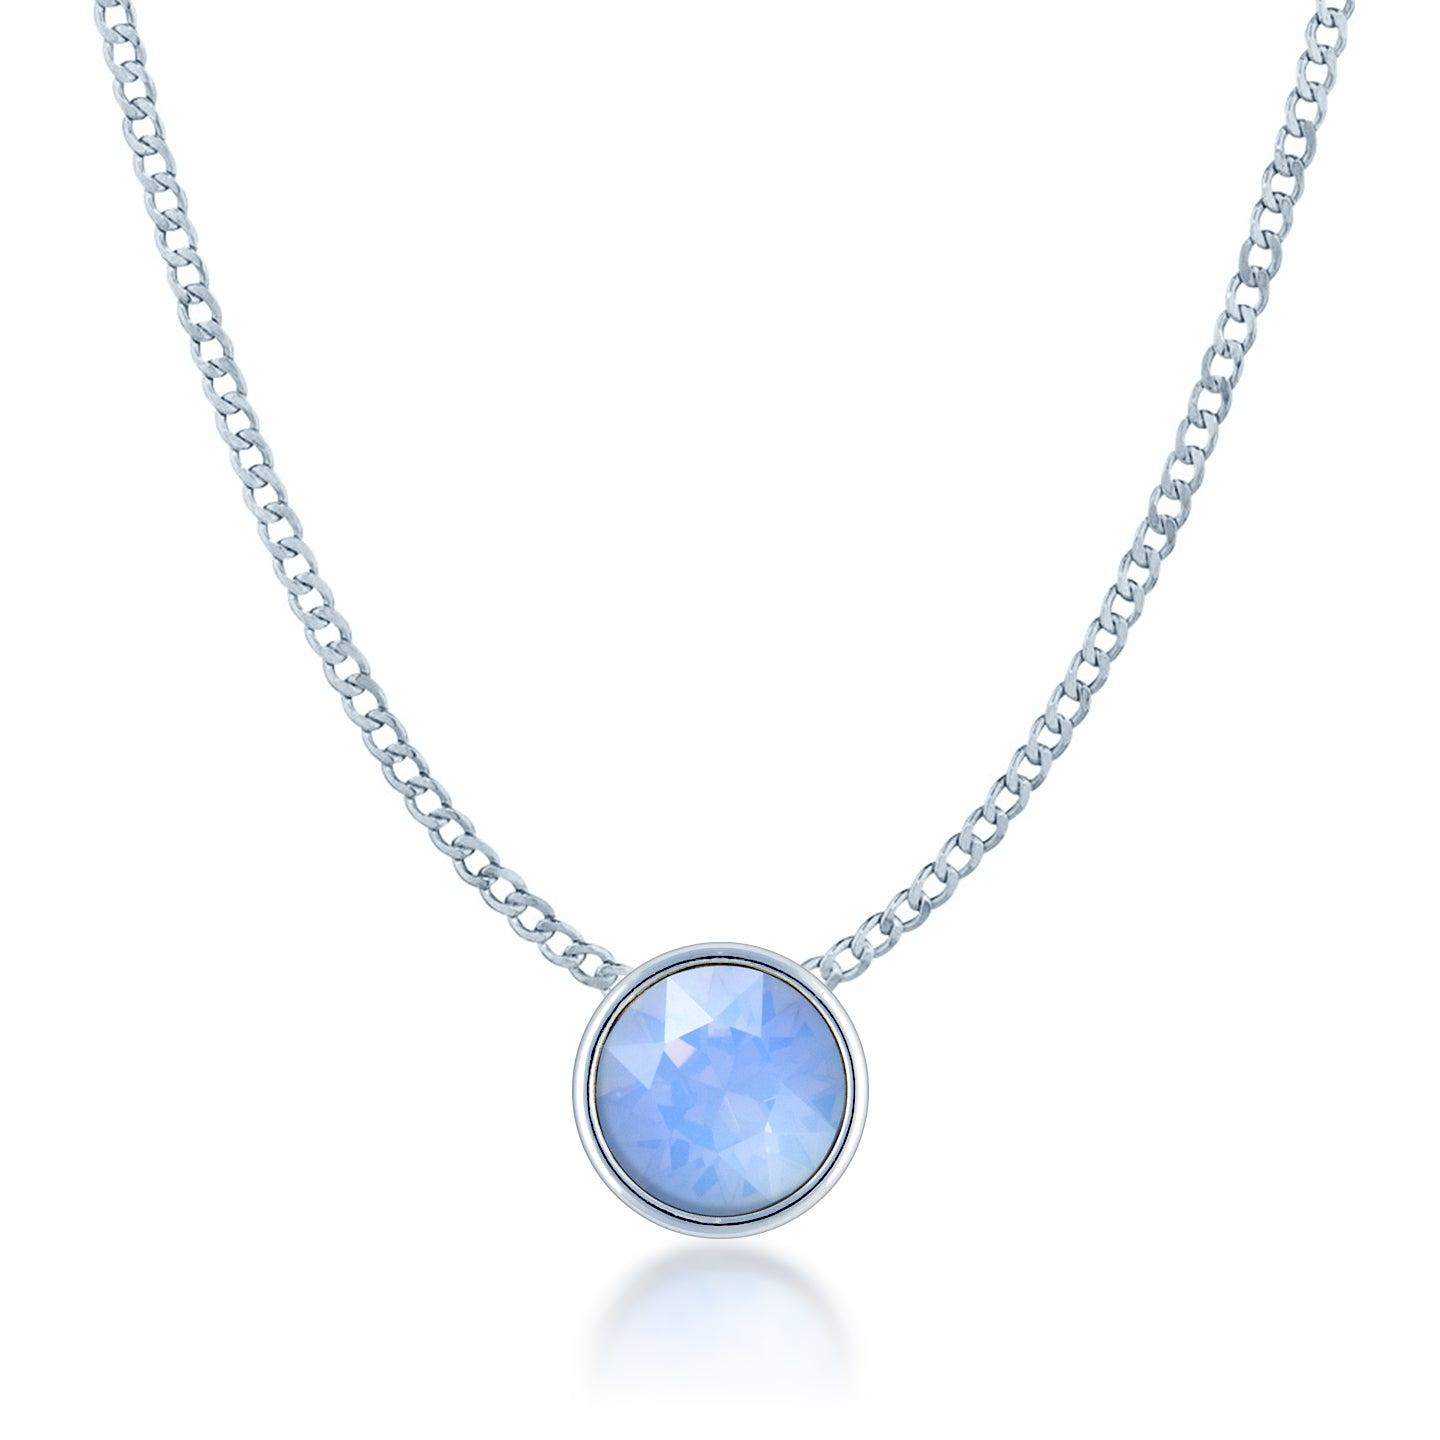 Harley Small Pendant Necklace with Air Blue Round Opals from Swarovski Silver Toned Rhodium Plated - Ed Heart